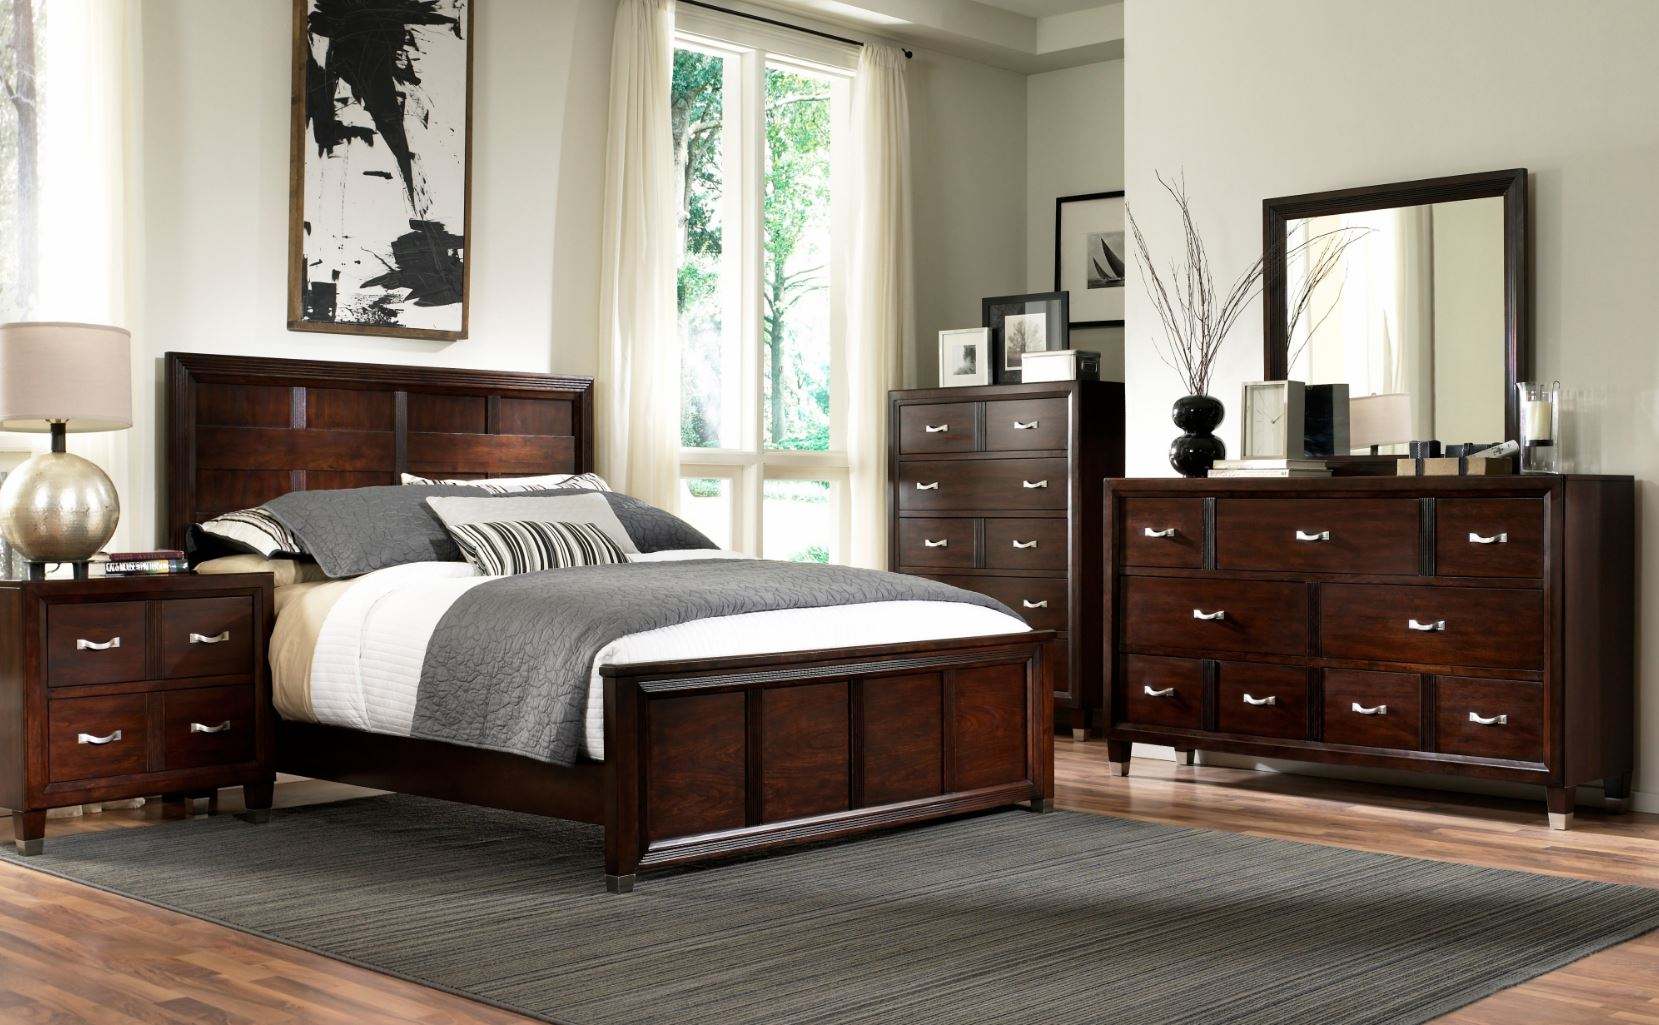 Broyhill Furniture Quality Craftsmanship  Remarkable